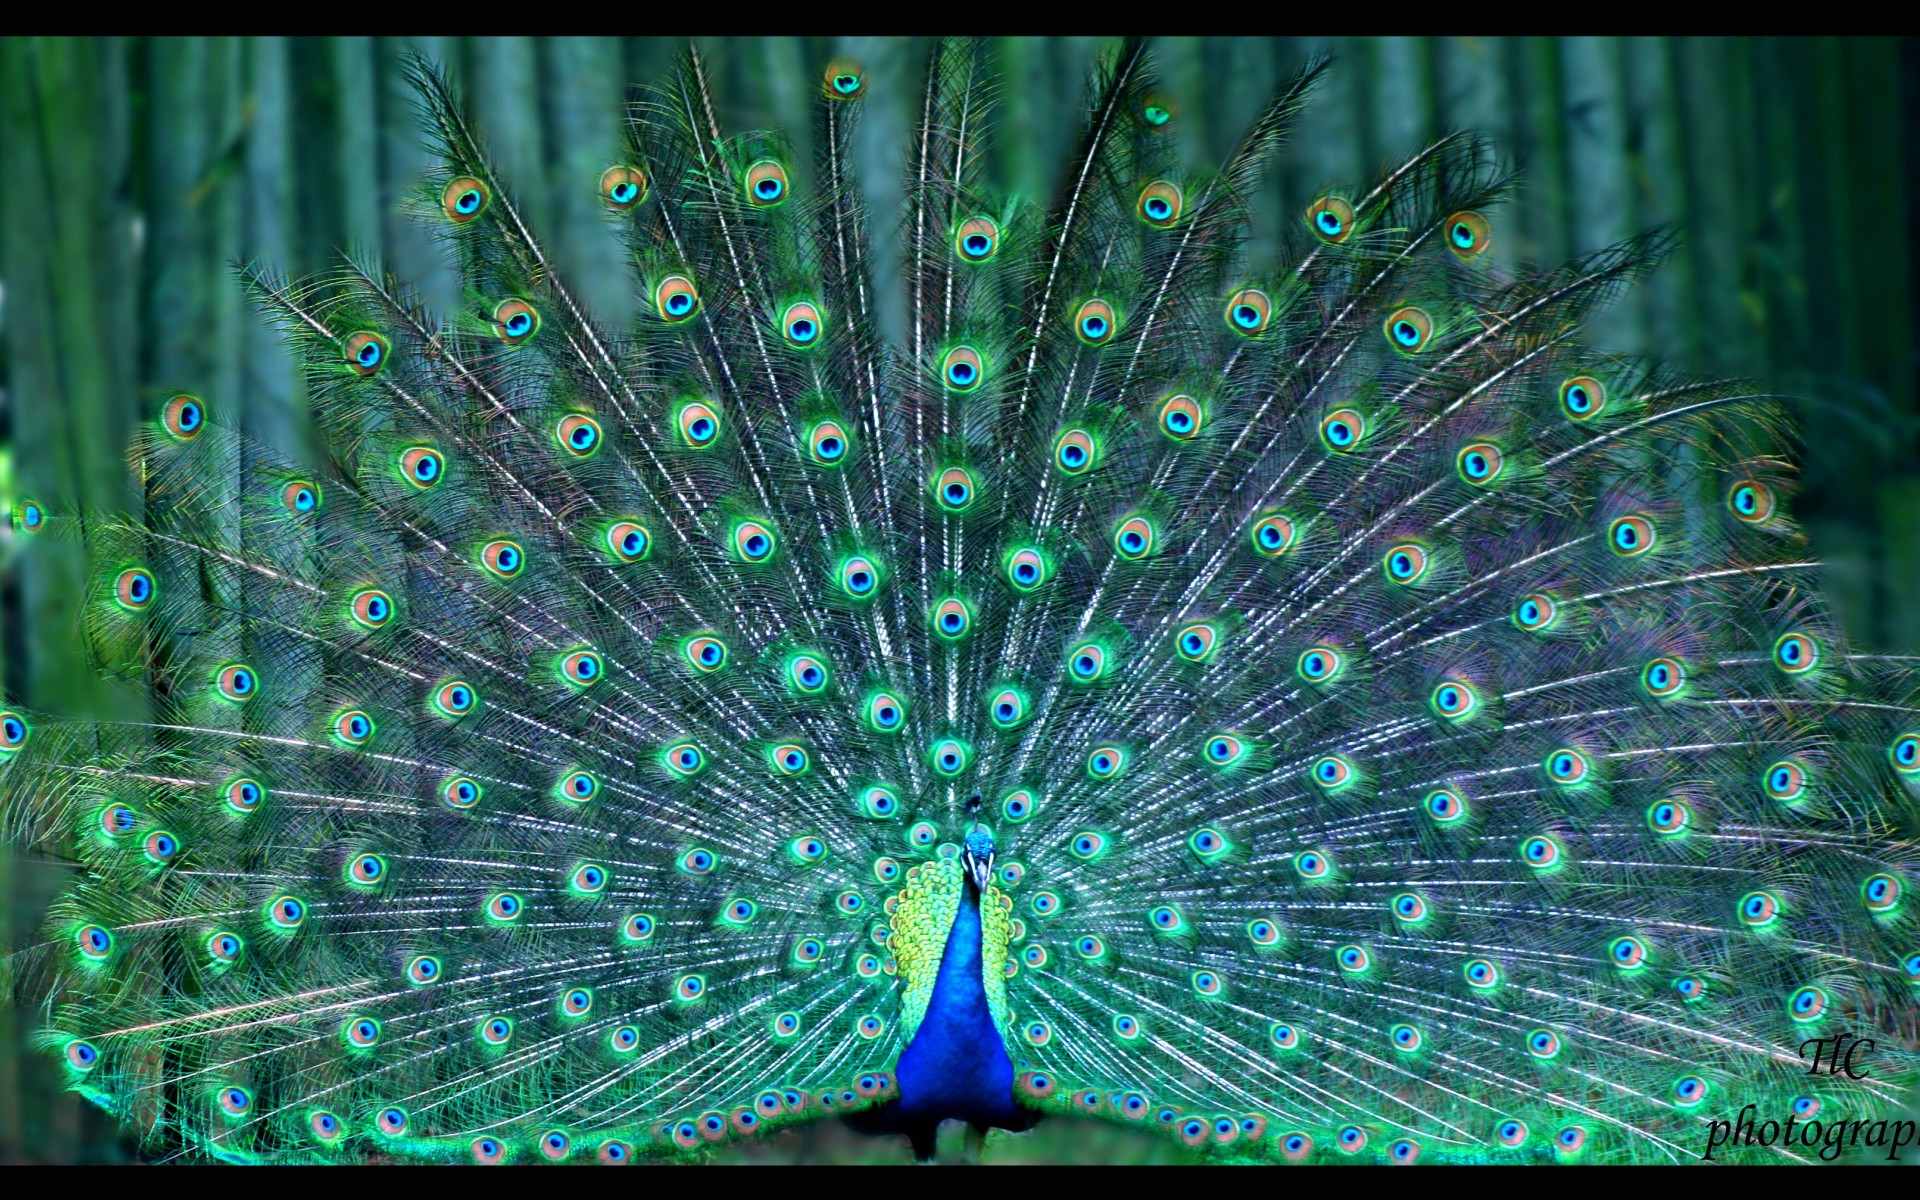 Free Download Peacock Full Hd Wallpaper And Background Image 1920x1200 1920x1200 For Your Desktop Mobile Tablet Explore 90 Peafowls Wallpapers Peafowls Wallpapers